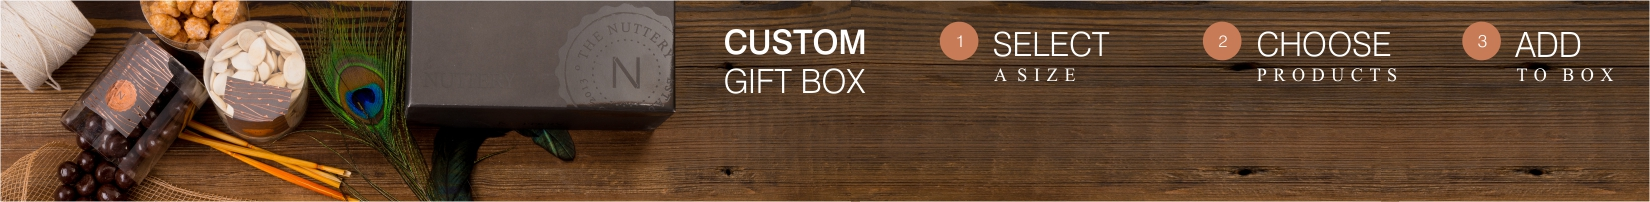 customize your own gift box nuttery